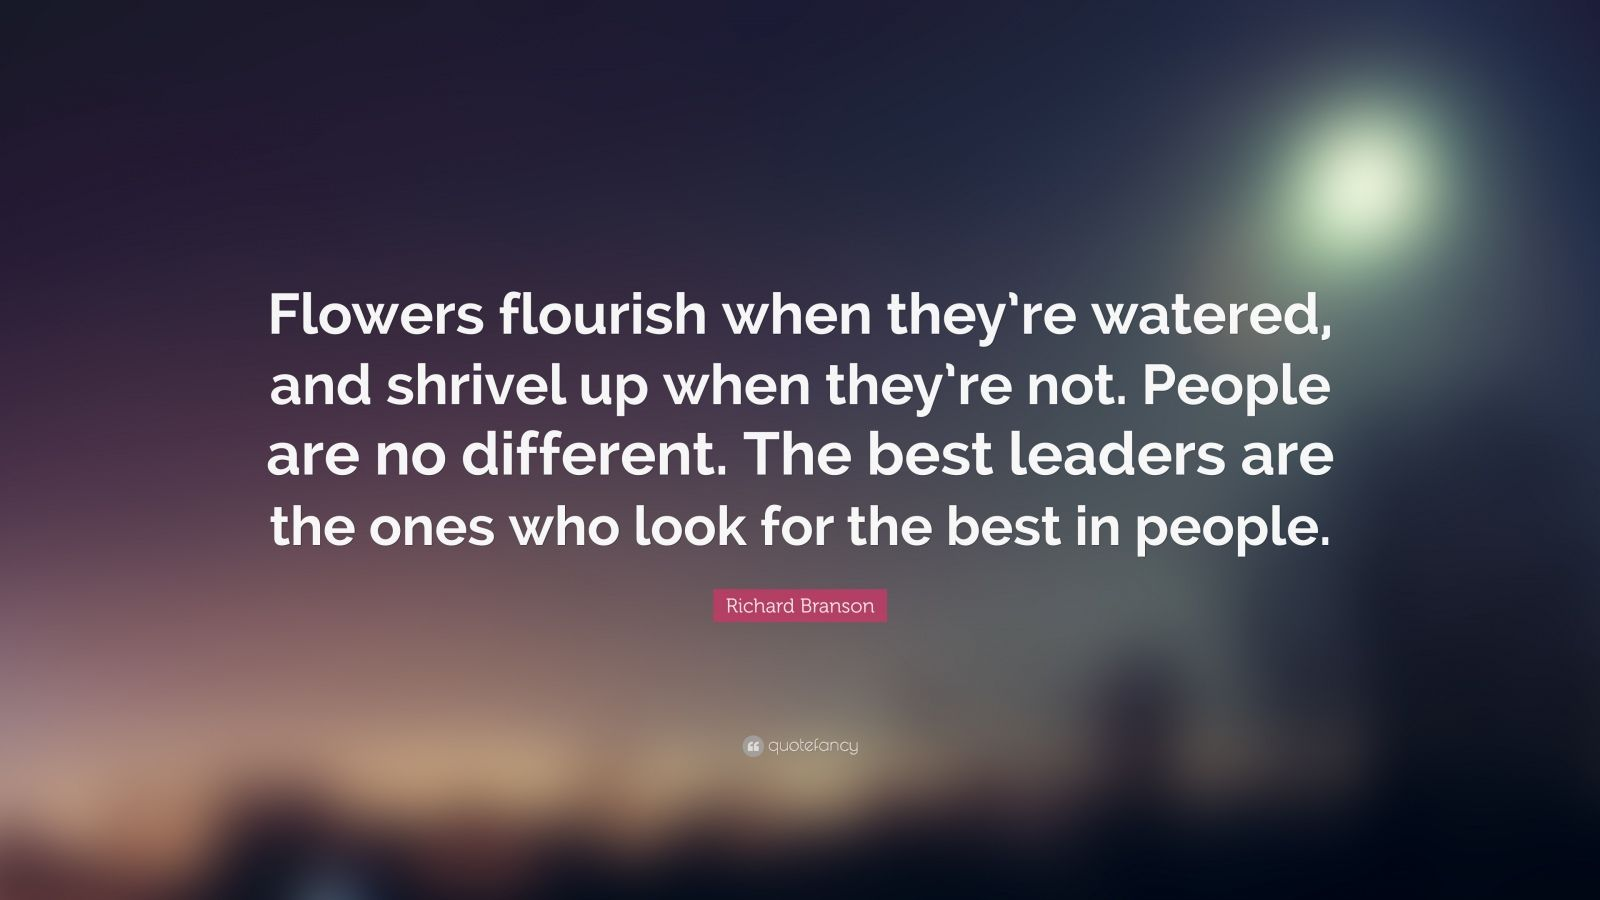 """Richard Branson Quote: """"Flowers flourish when they're watered, and shrivel up when they're not. People are no different. The best leaders are the ones who look for the best in people."""""""